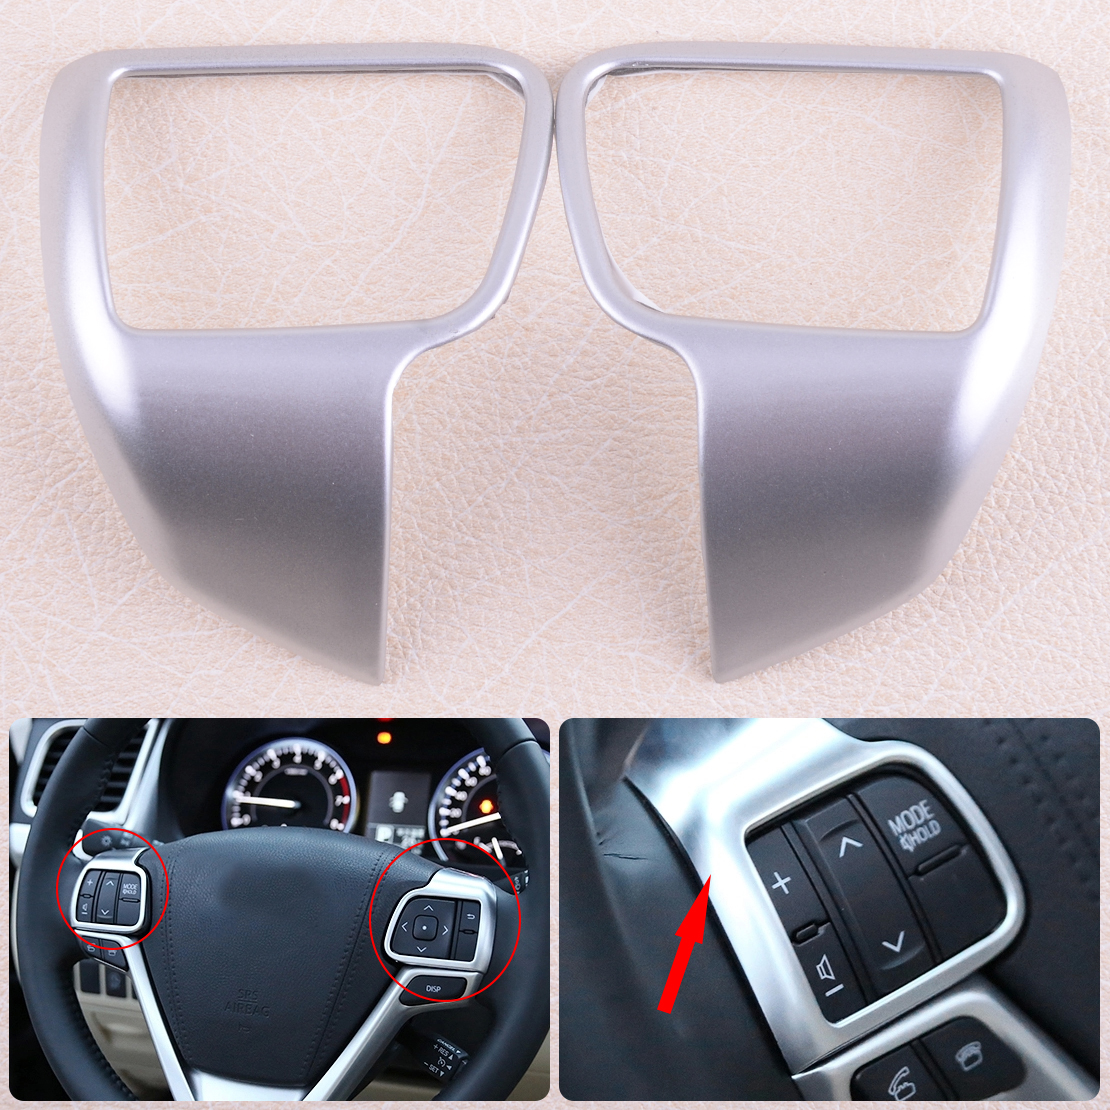 DWCX 2PCS ABS Plastic Chrome Steering Wheel Cover Garnish Molding Fit for Toyota Highlander 2014 2015 2016 2017